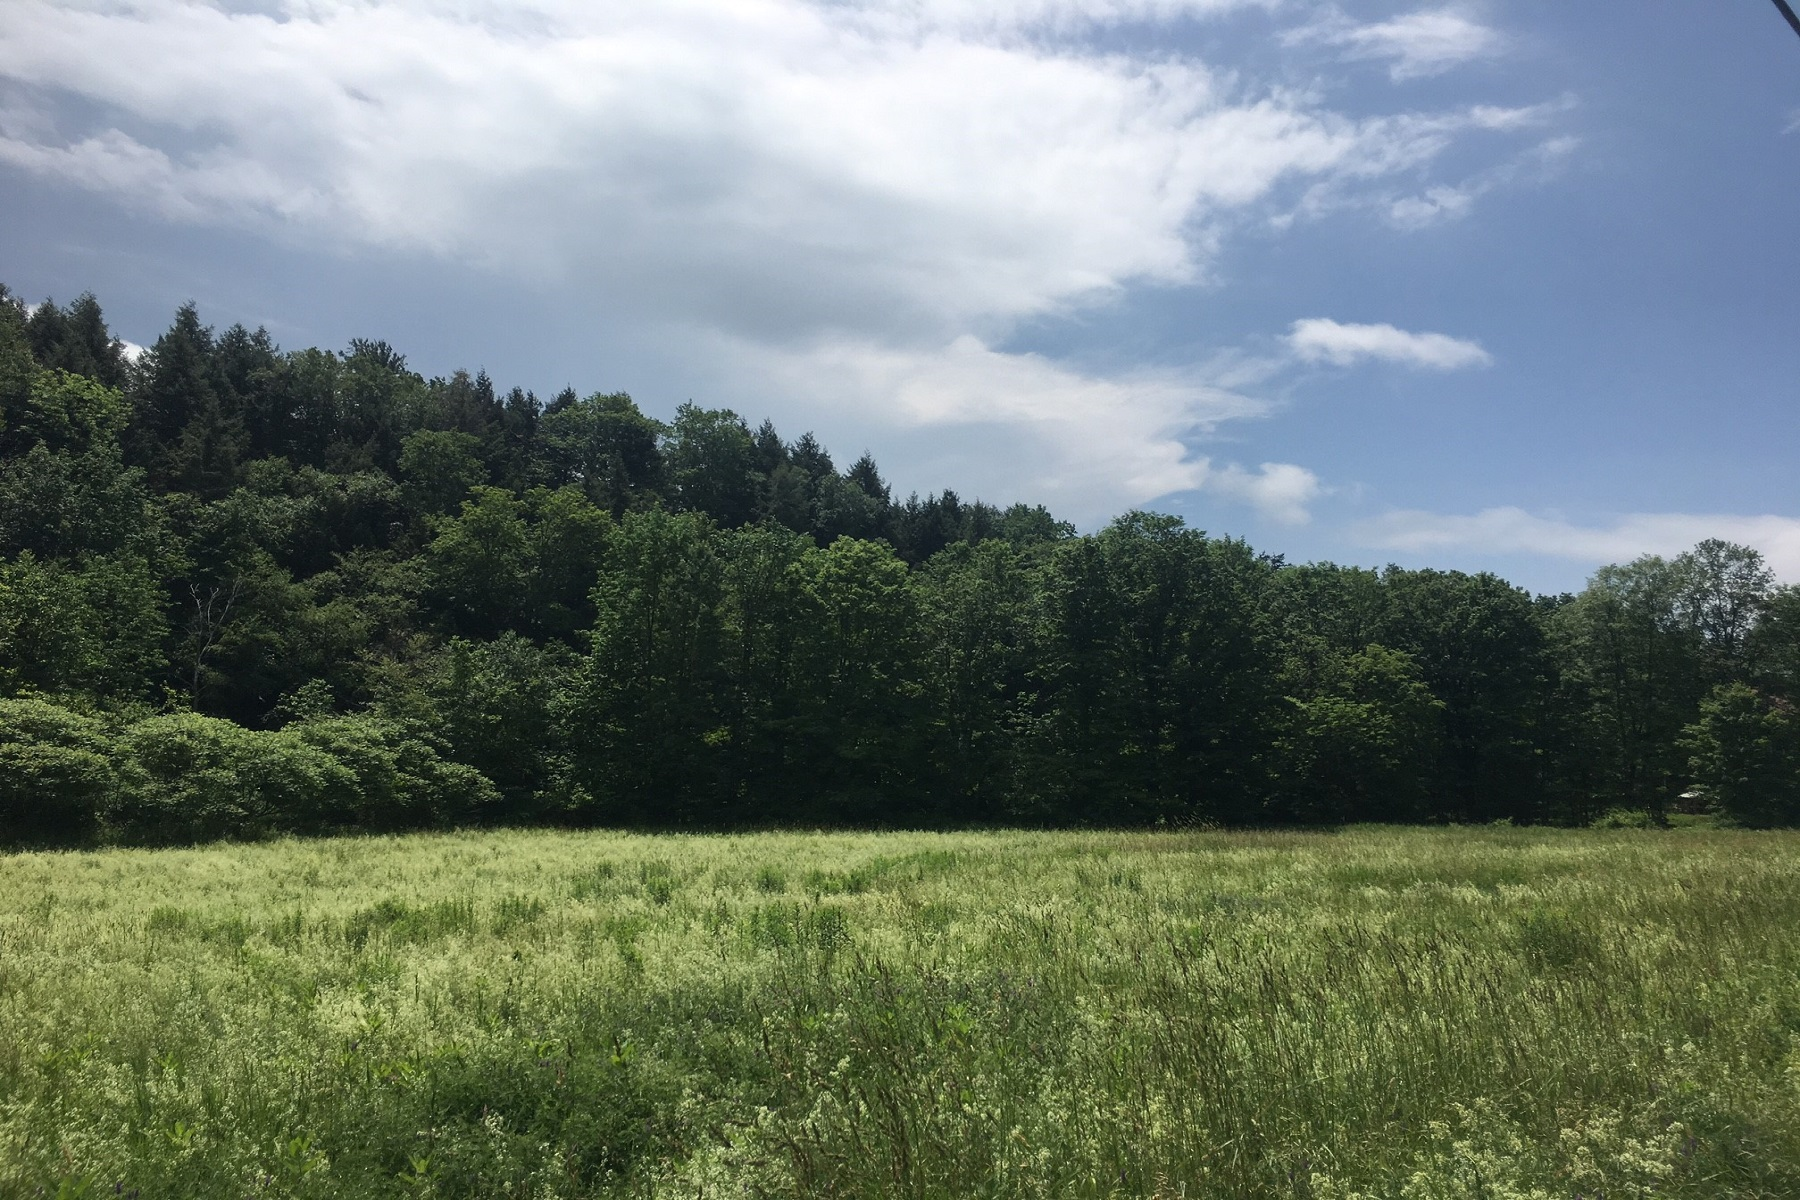 Land for Sale at Property at the Foot of Mt. Ascutney 0000 Rt. 44 West Windsor, Vermont, 05037 United States